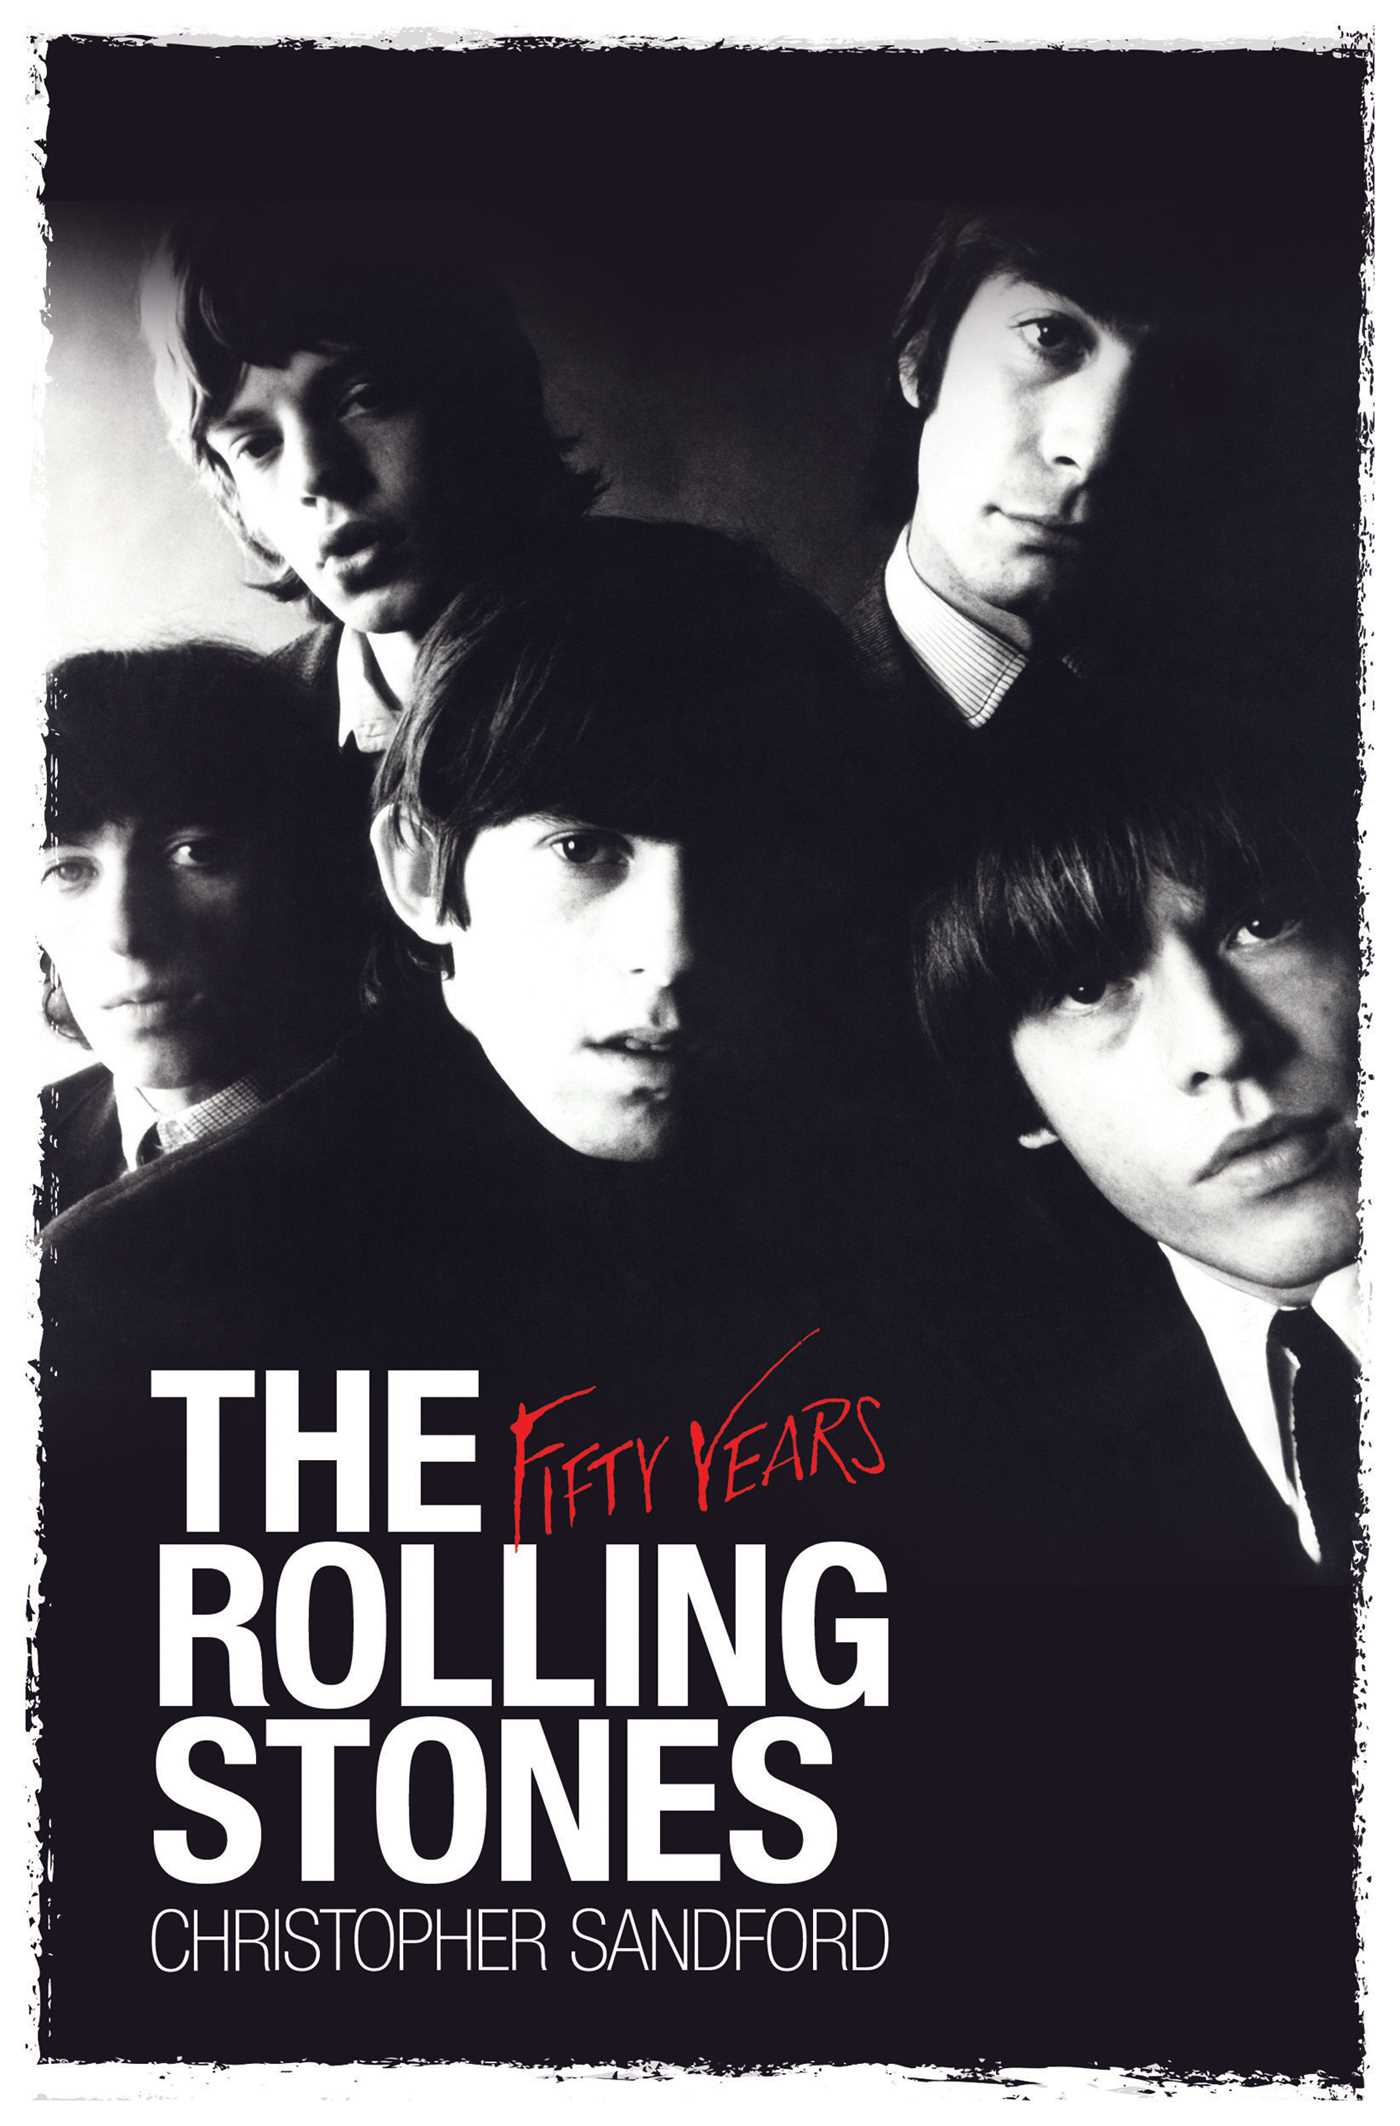 The rolling stones fifty years 9780857201027 hr